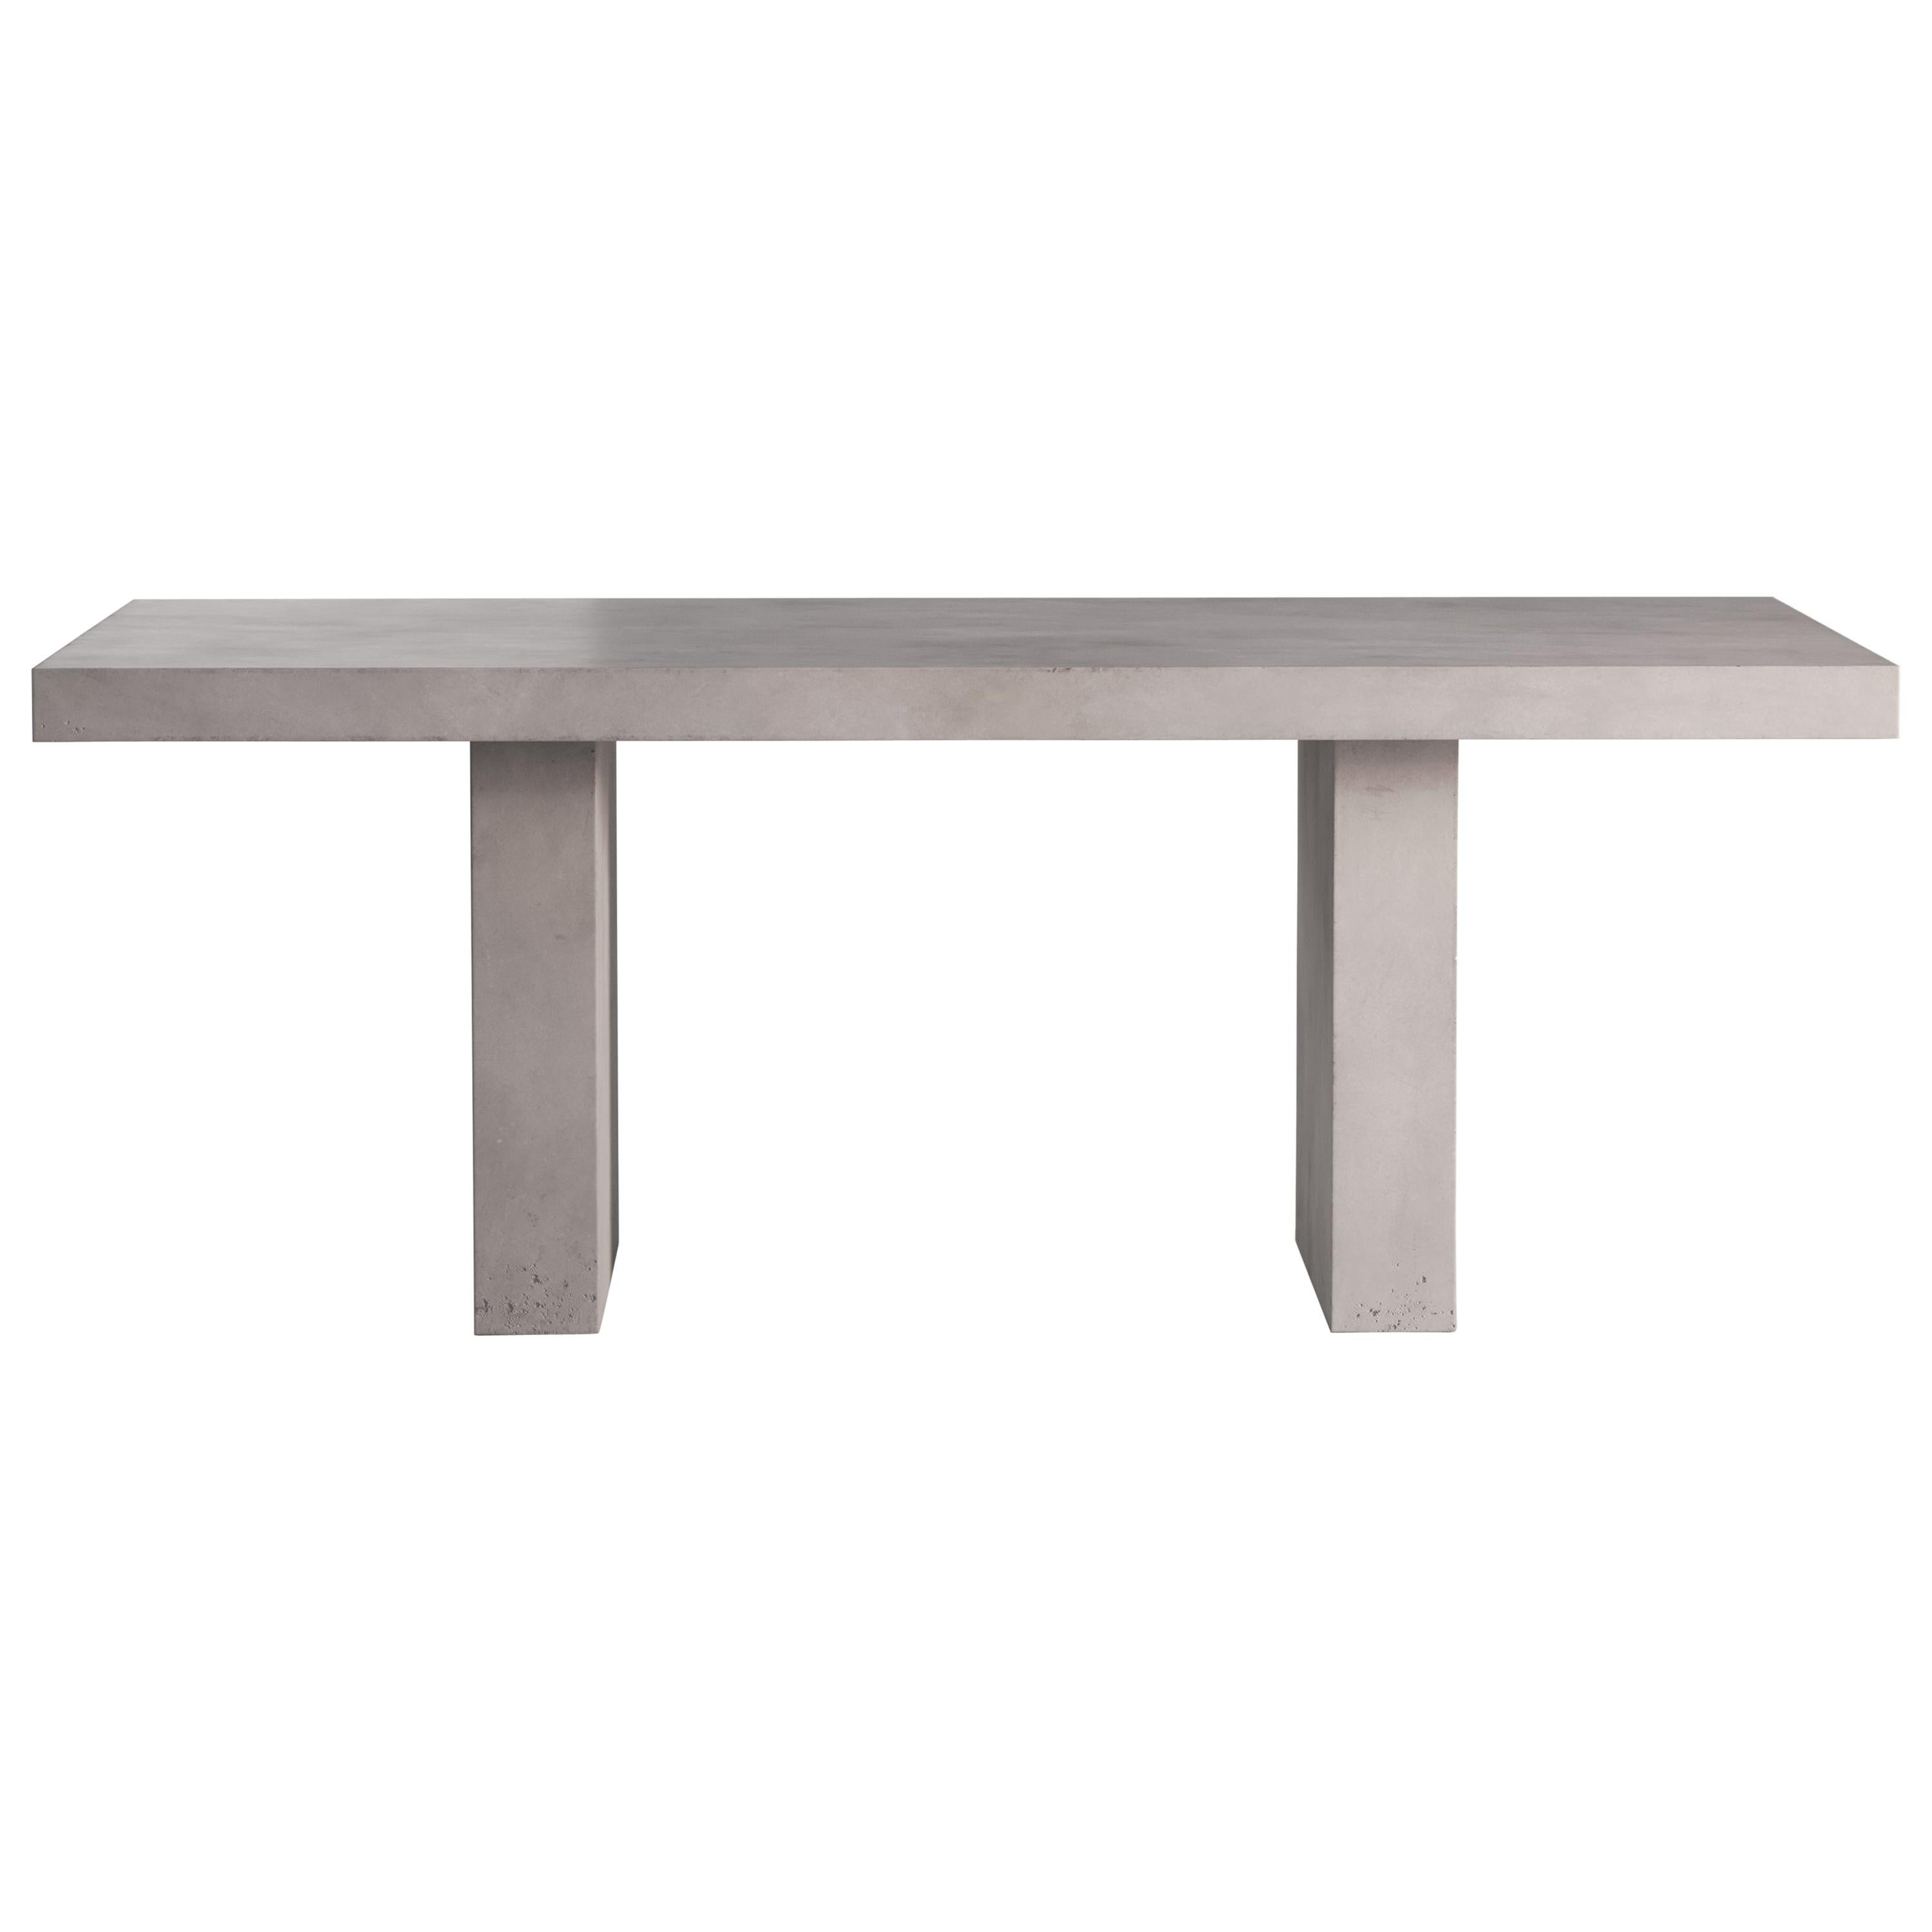 21st Century Giorgione 200, Concrete Dining Table, 100% Handcrafted in Italy